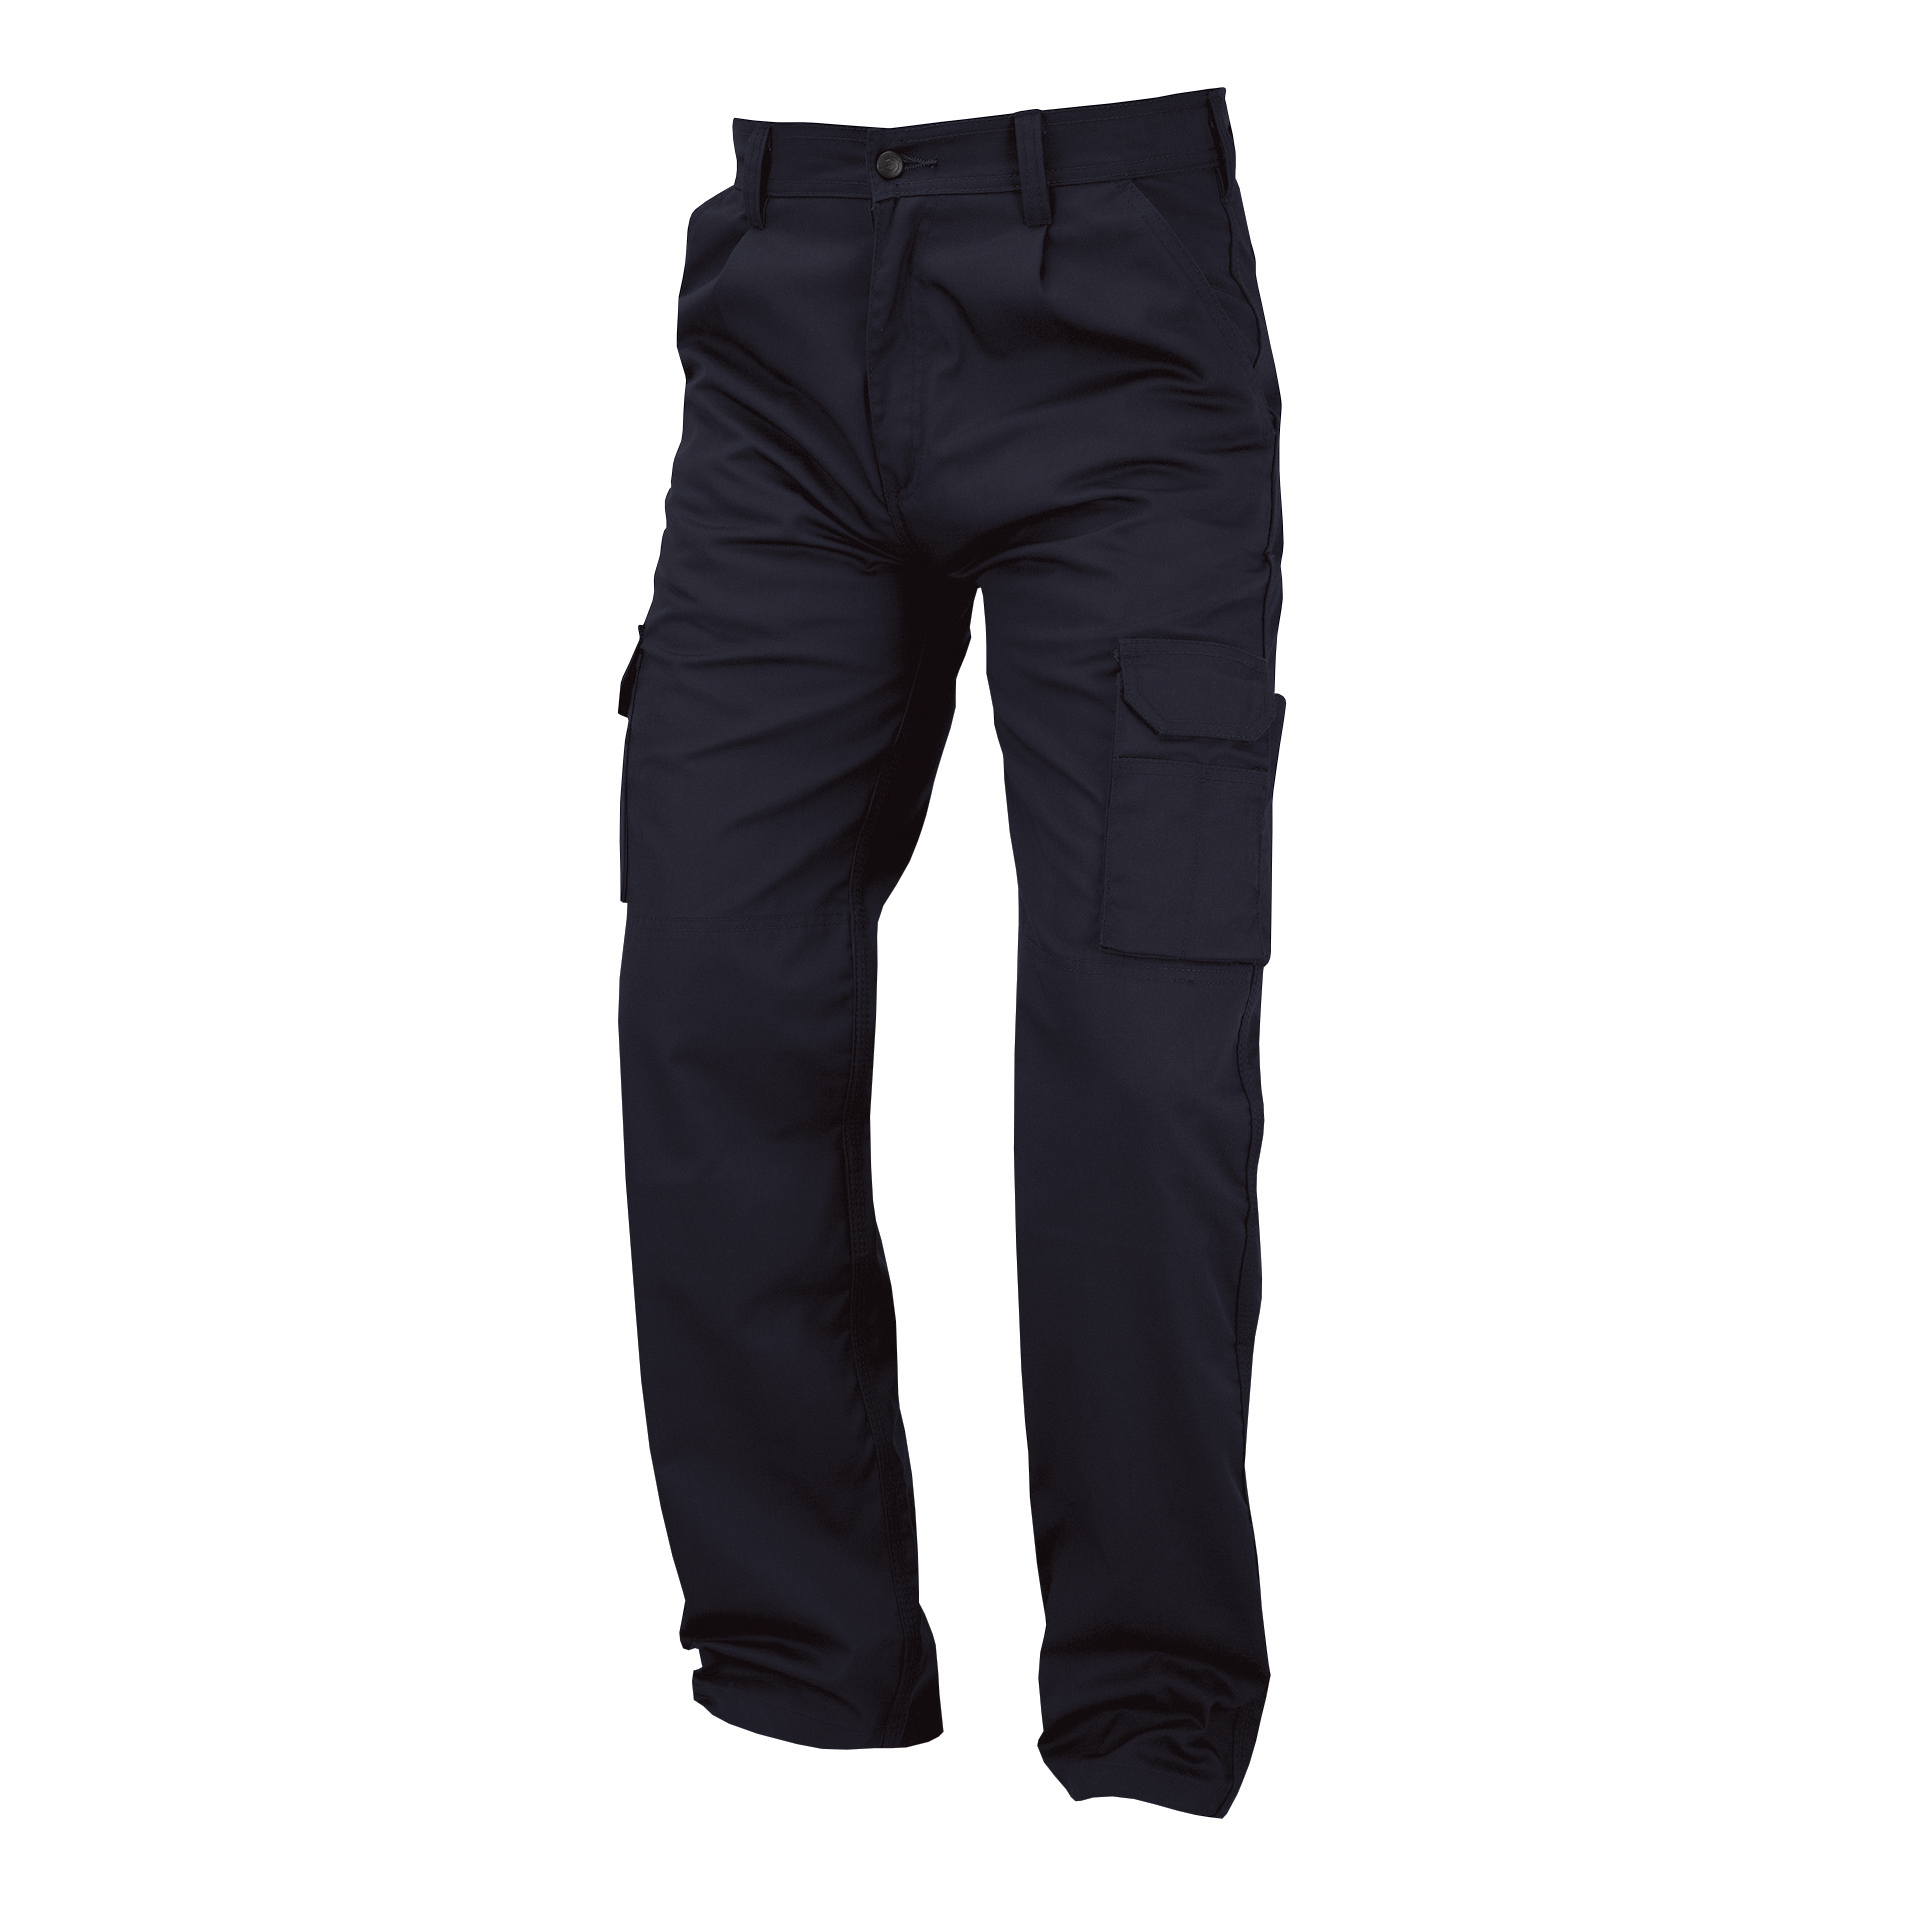 Combat / Cargo Combat Trouser Multi-functional Waist 30in Leg 29in Navy PCTHWN30S *Approx 3 Day Leadtime*